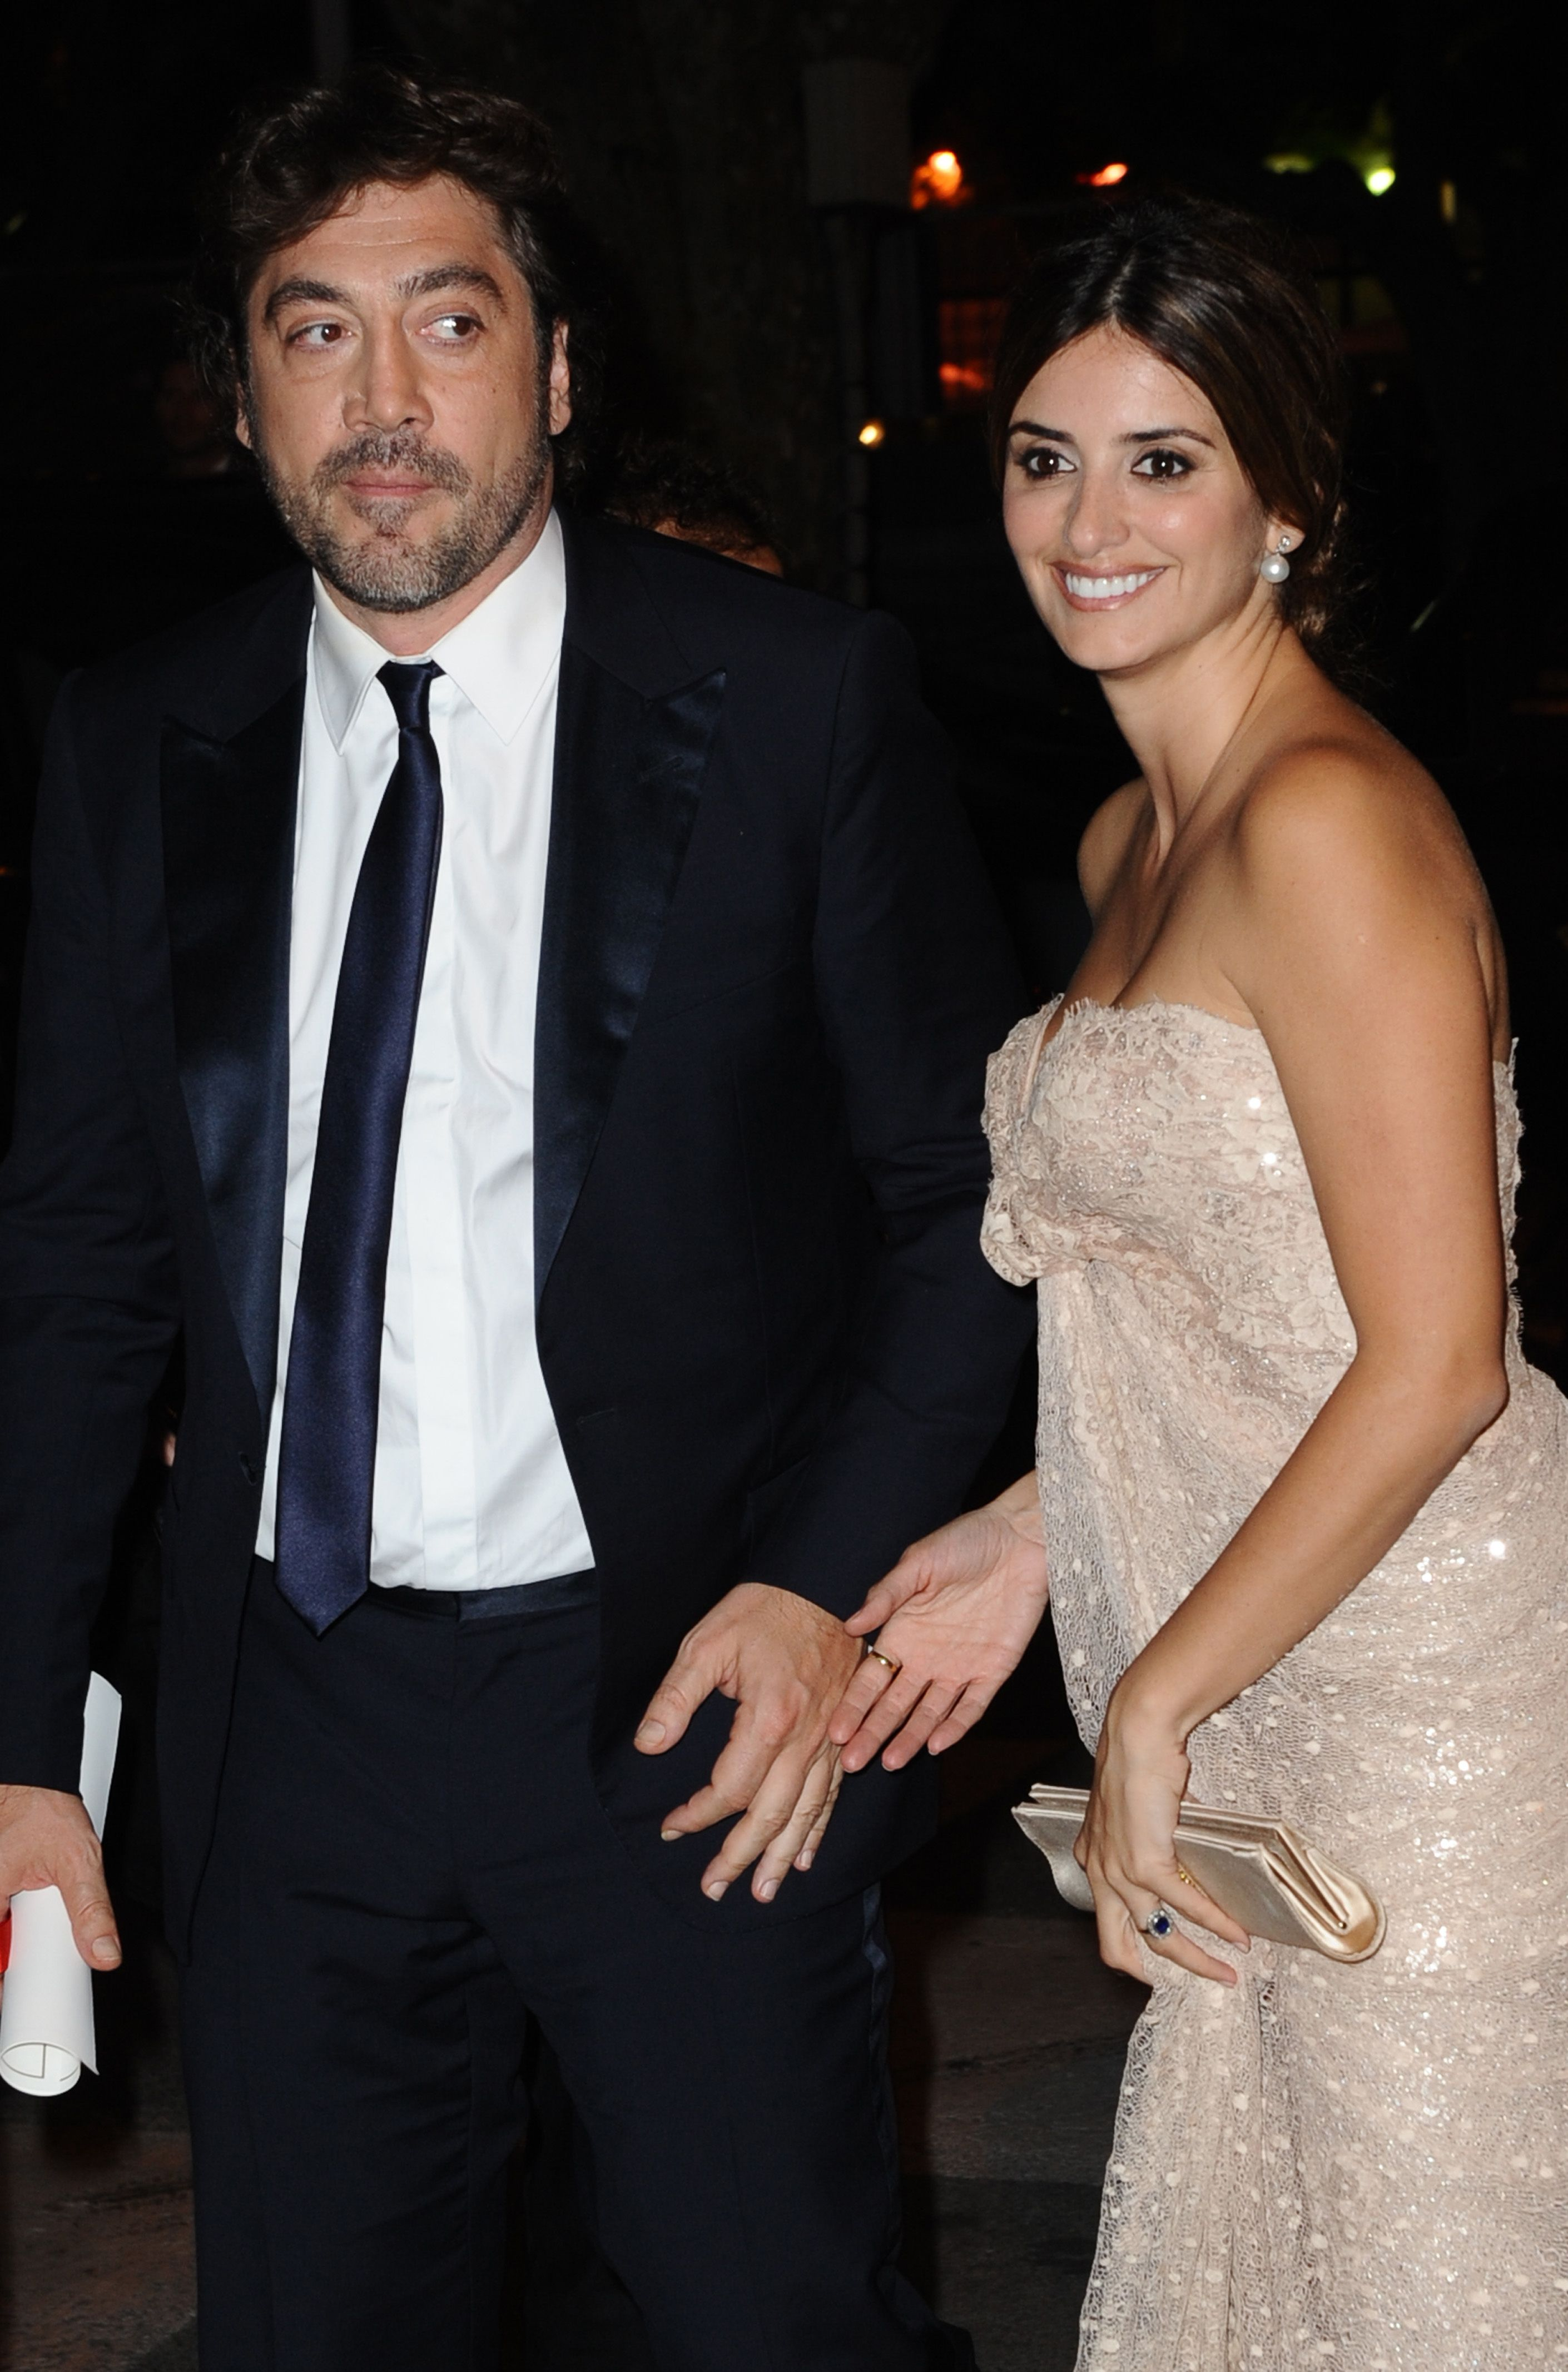 Javier Bardem and Penelope Cruz at the 63rd Cannes International Film Festival in 2010 | Source: Getty Images